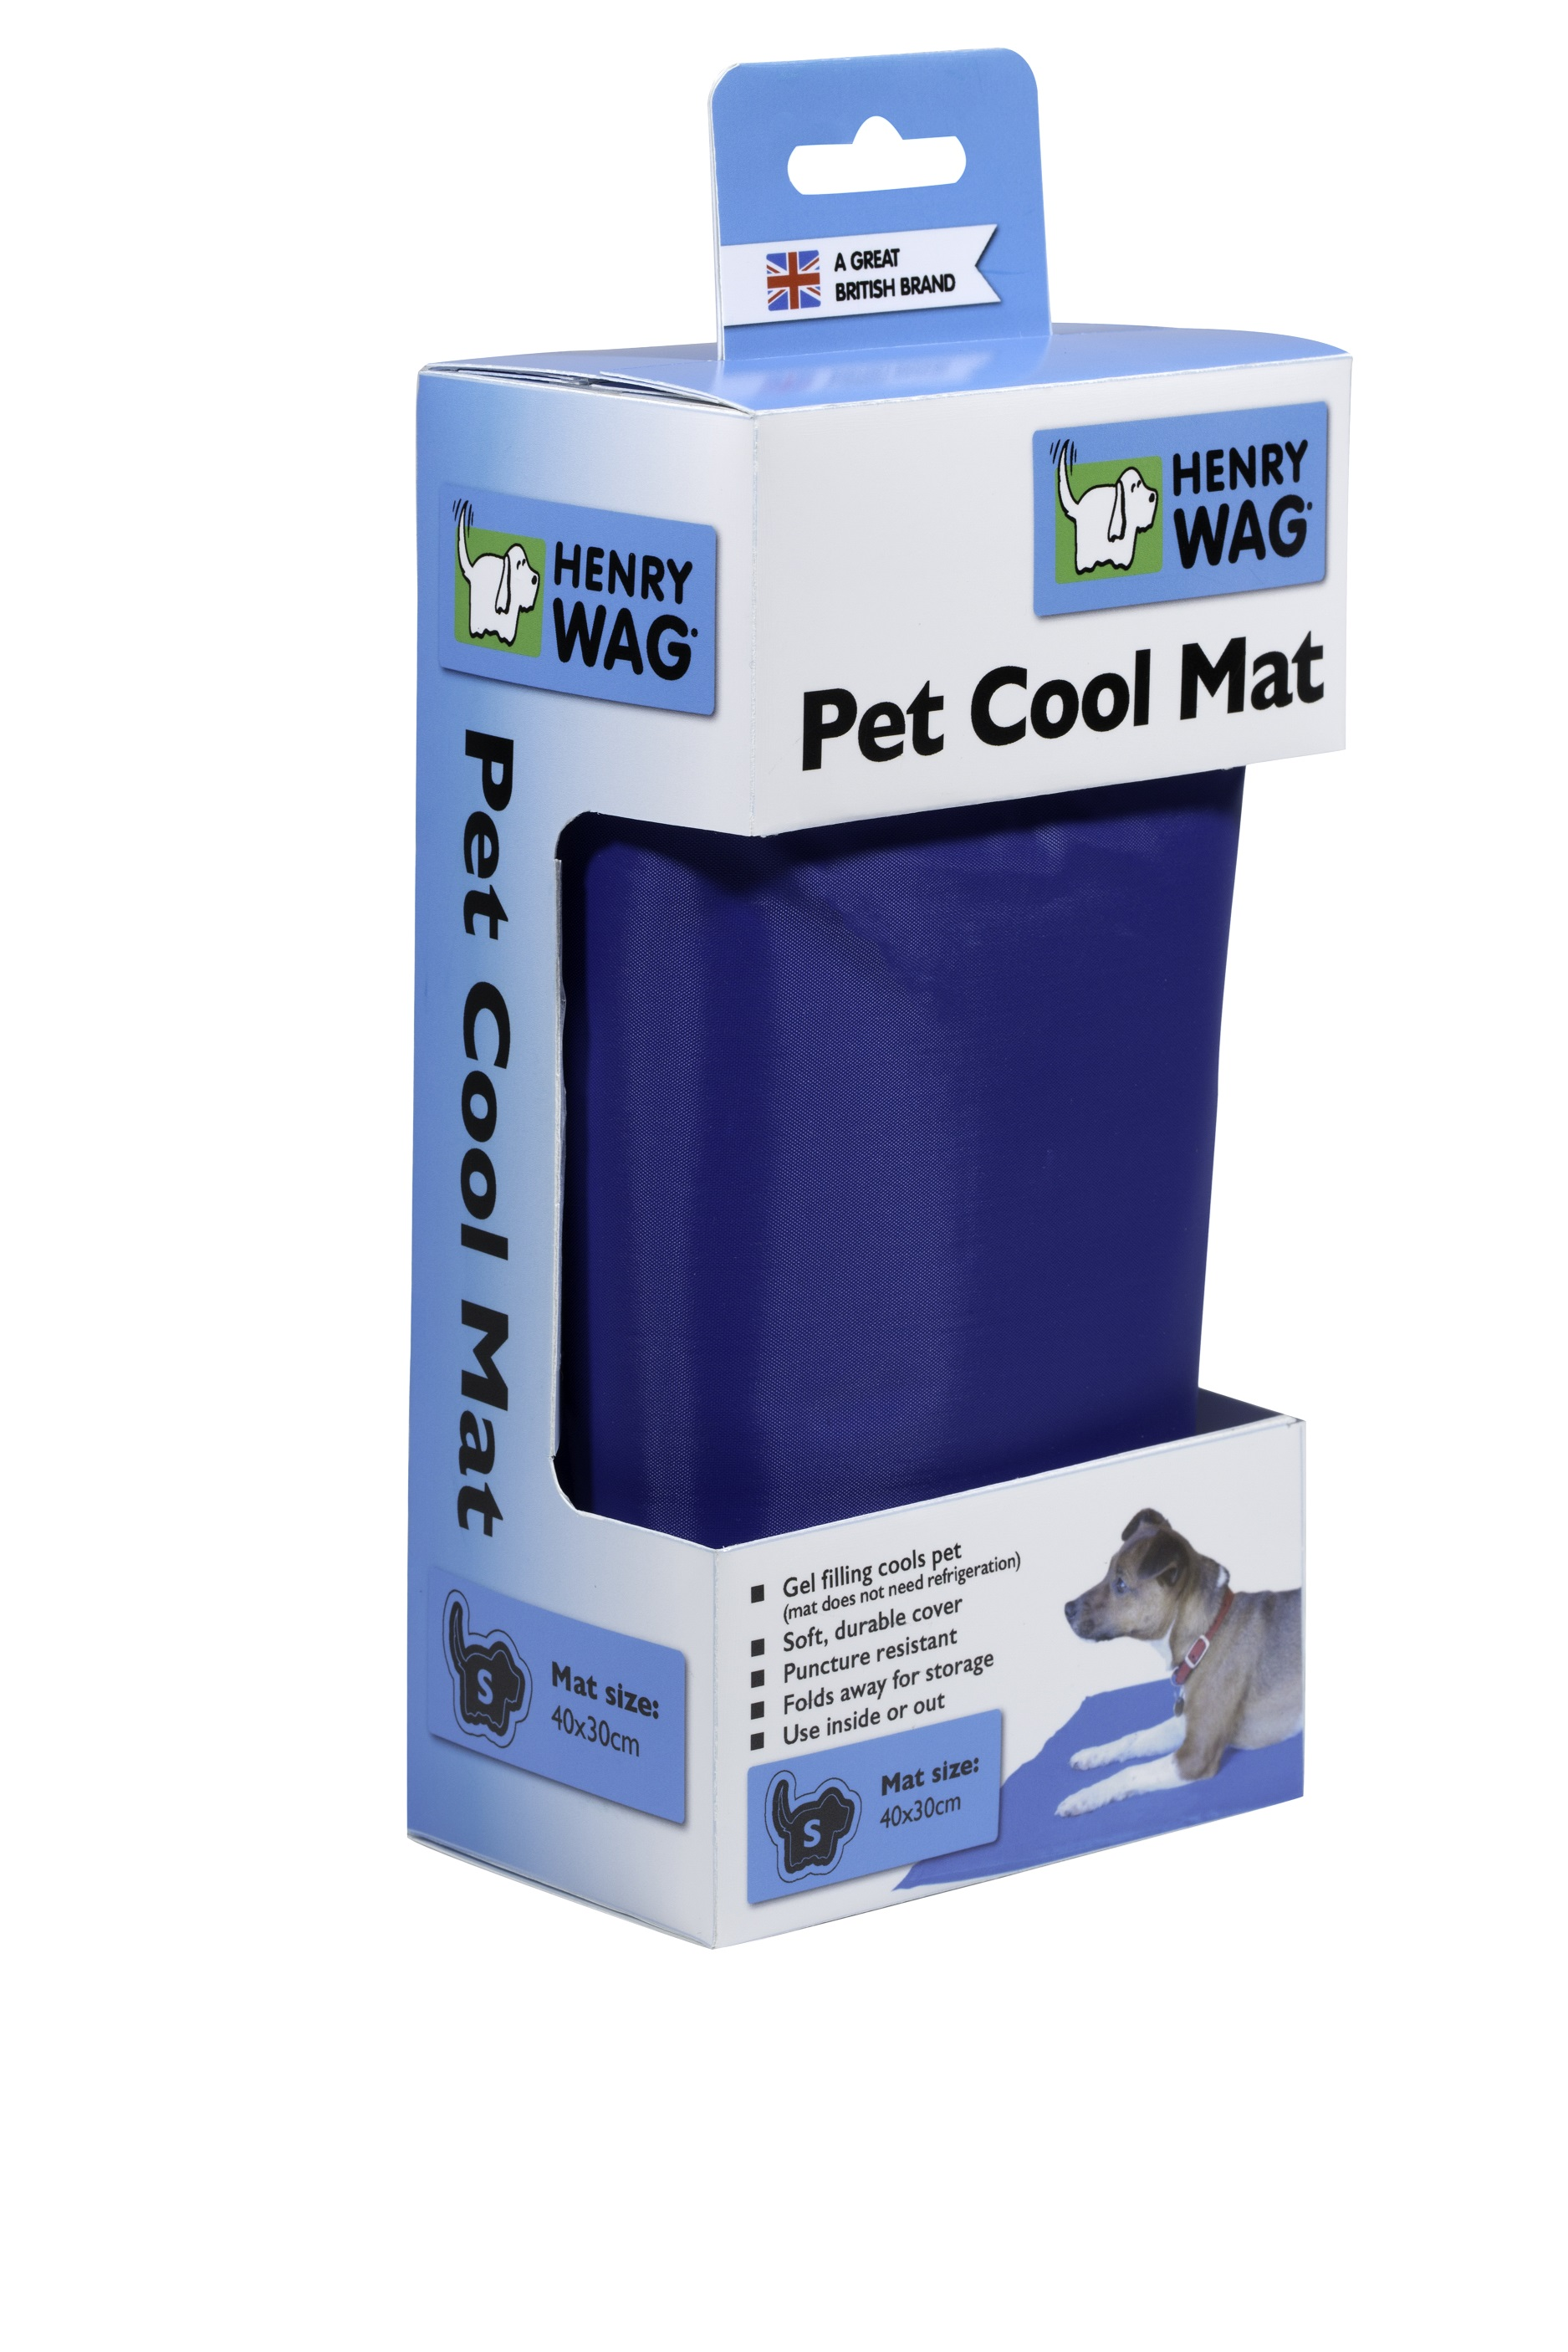 mats for multi dogs function comfort bed pad pin cold folding and cats cooling wyd summer soft gel ice different pet self sizes